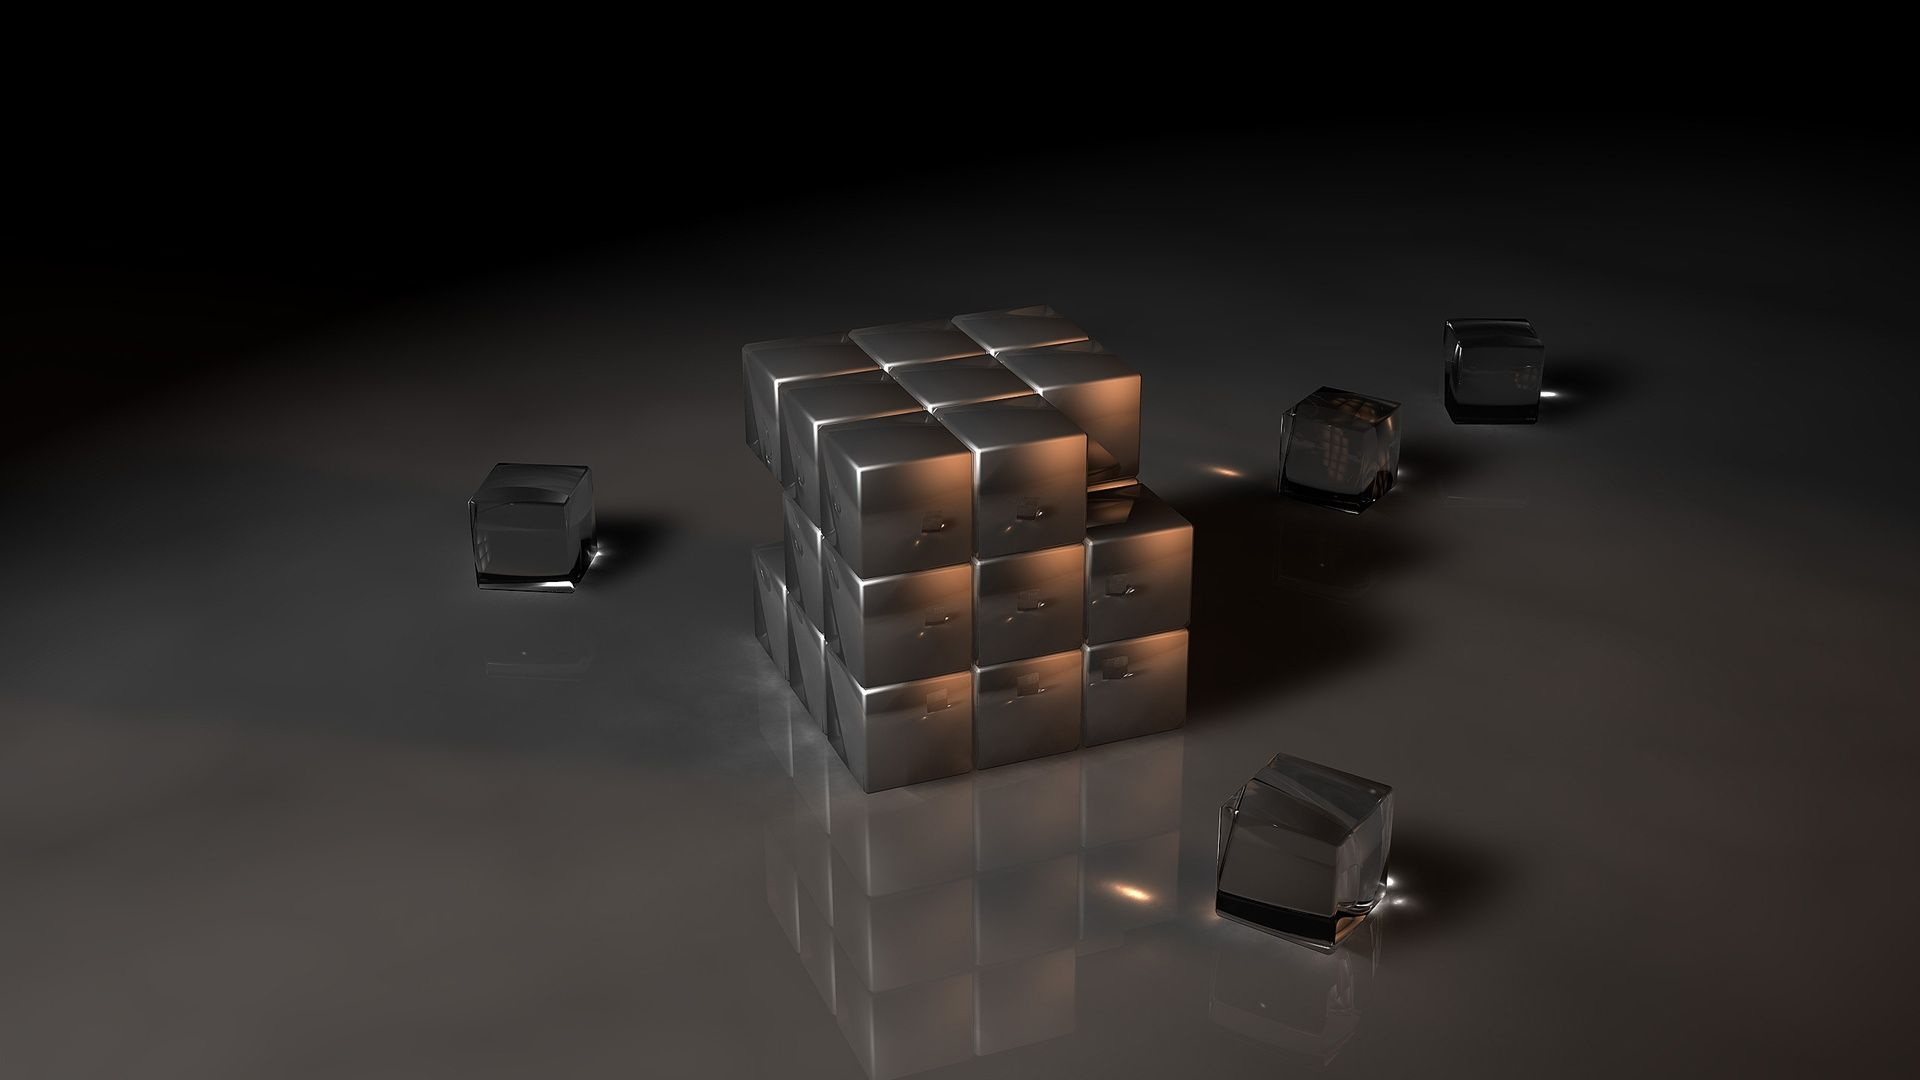 3d cuboids tablet #wallpaper ~ #abstract #design #art #photography